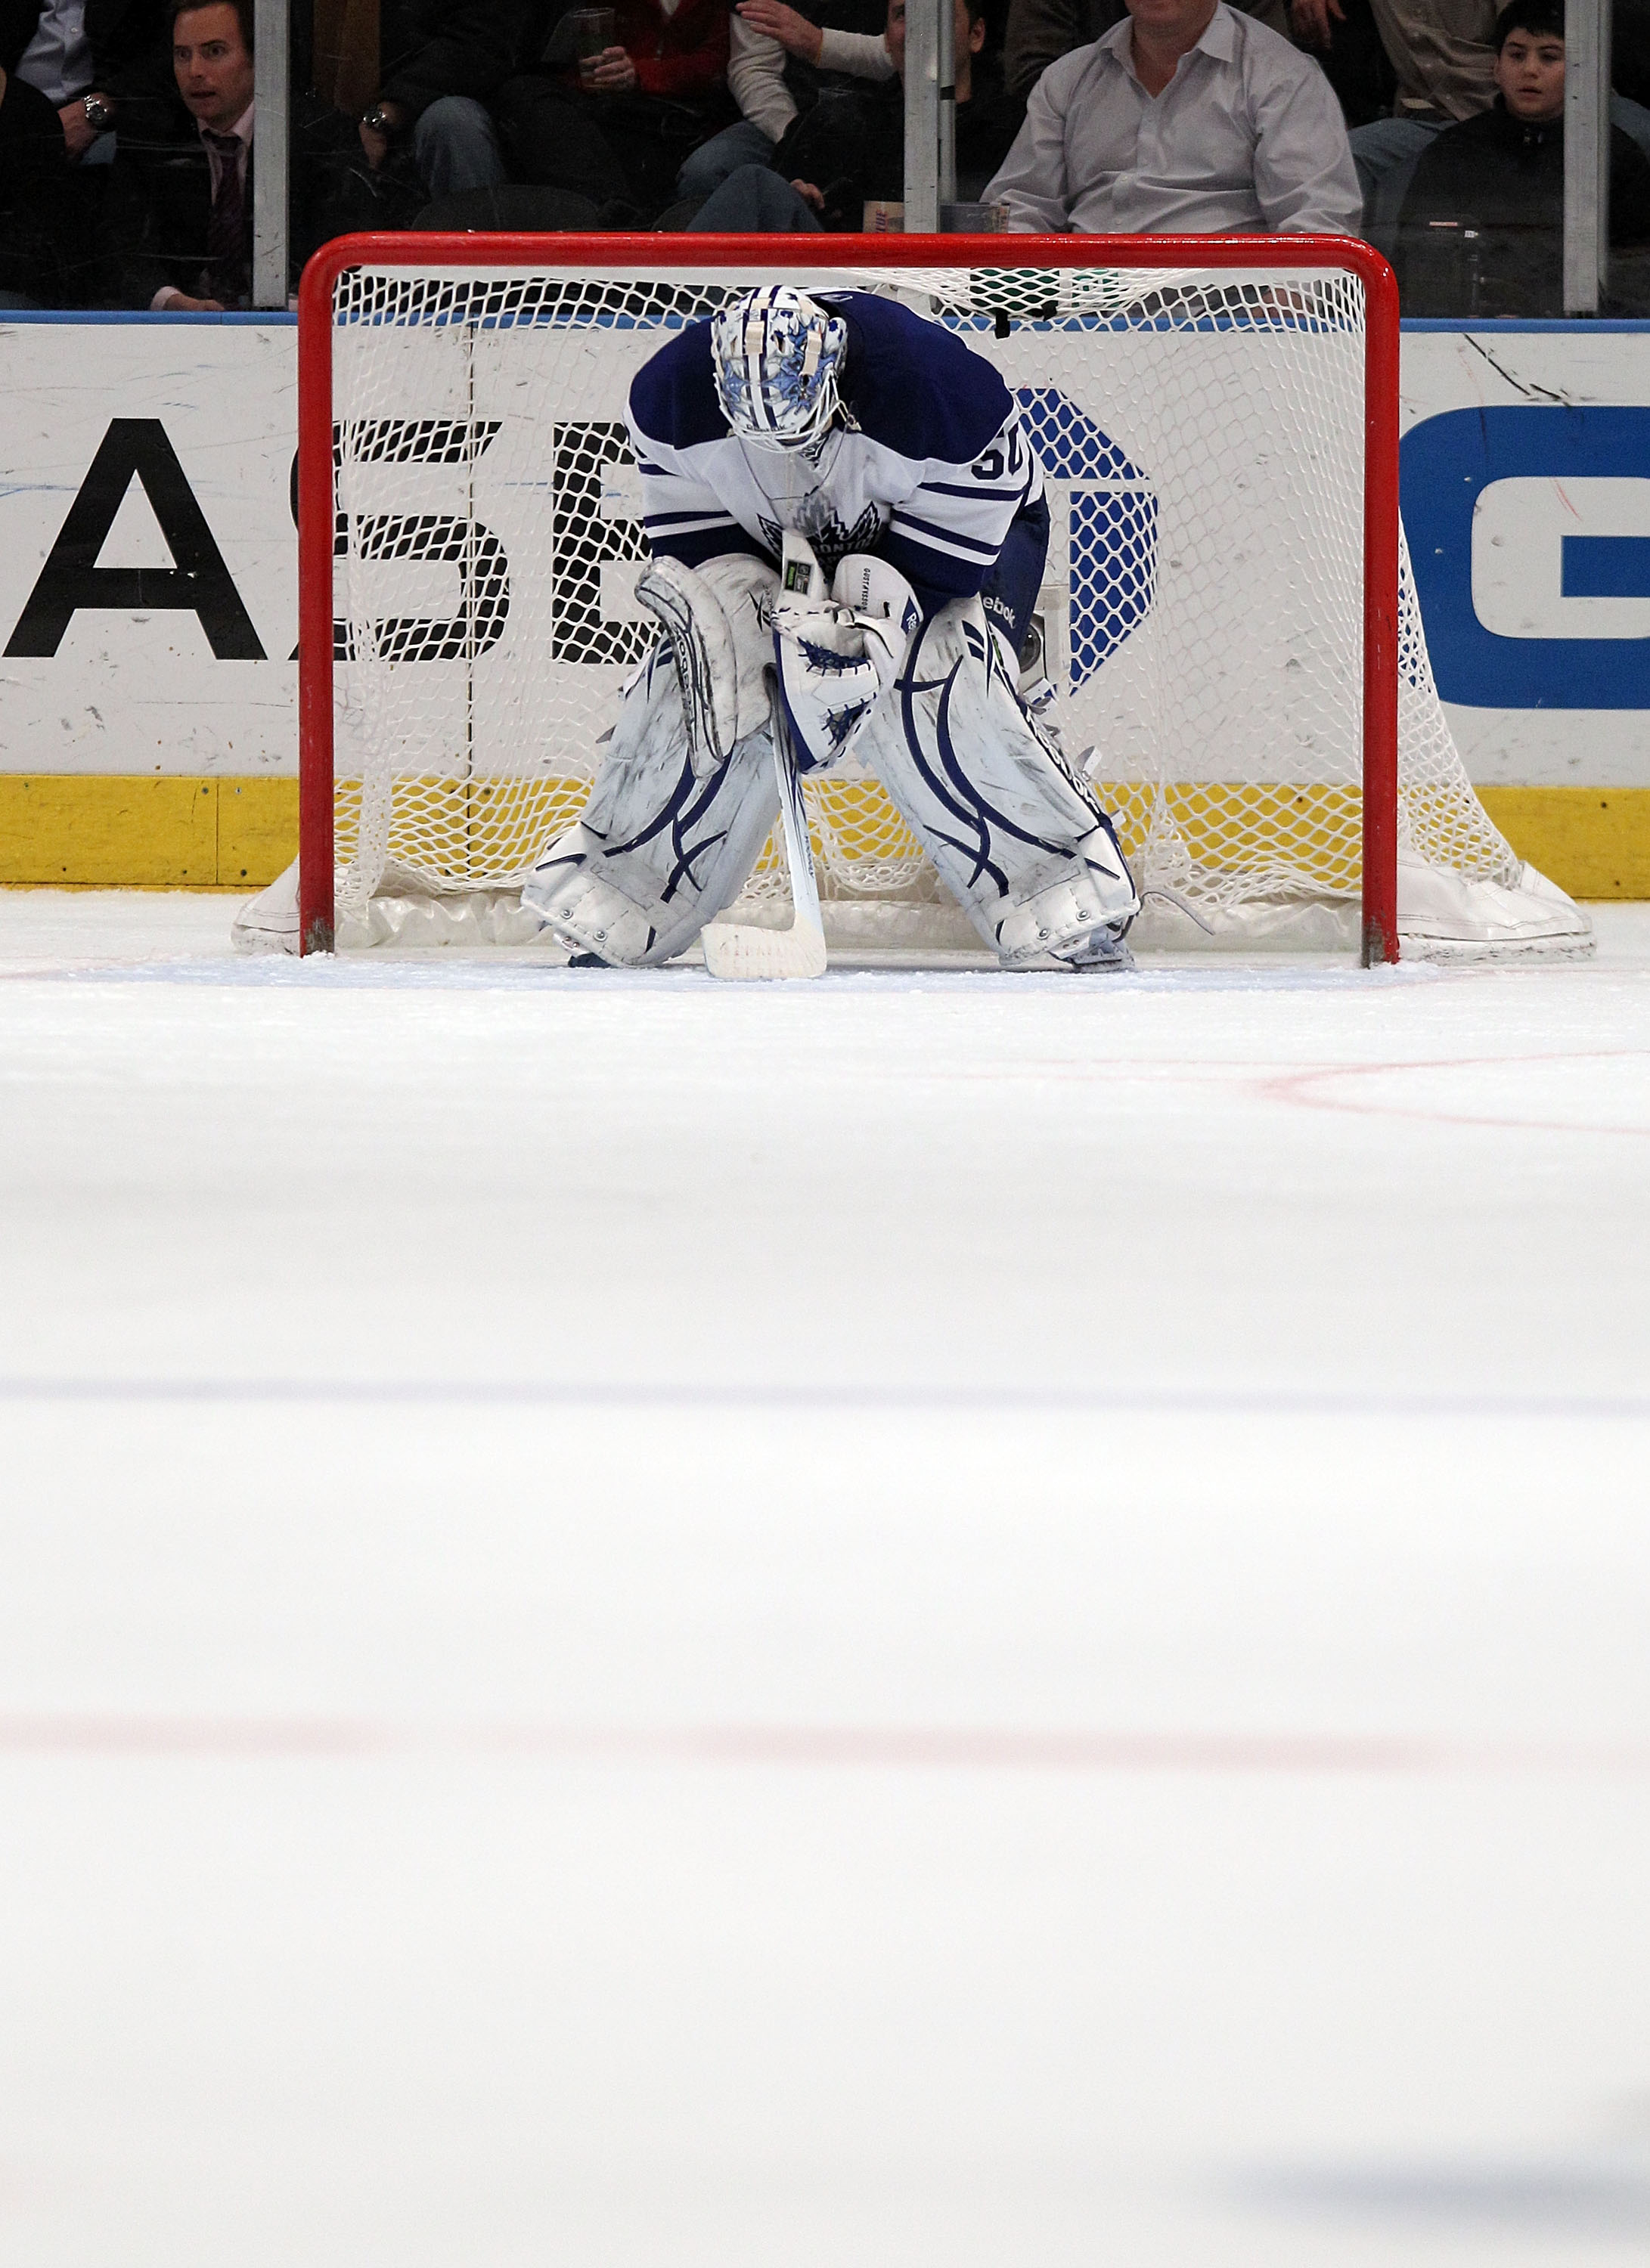 NEW YORK, NY - JANUARY 19: Jonas Gustavsson #50 of the Toronto Maple Leafs takes a break during his 7-0 loss to the New York Rangers at Madison Square Garden on January 19, 2011 in New York City. (Photo by Bruce Bennett/Getty Images)